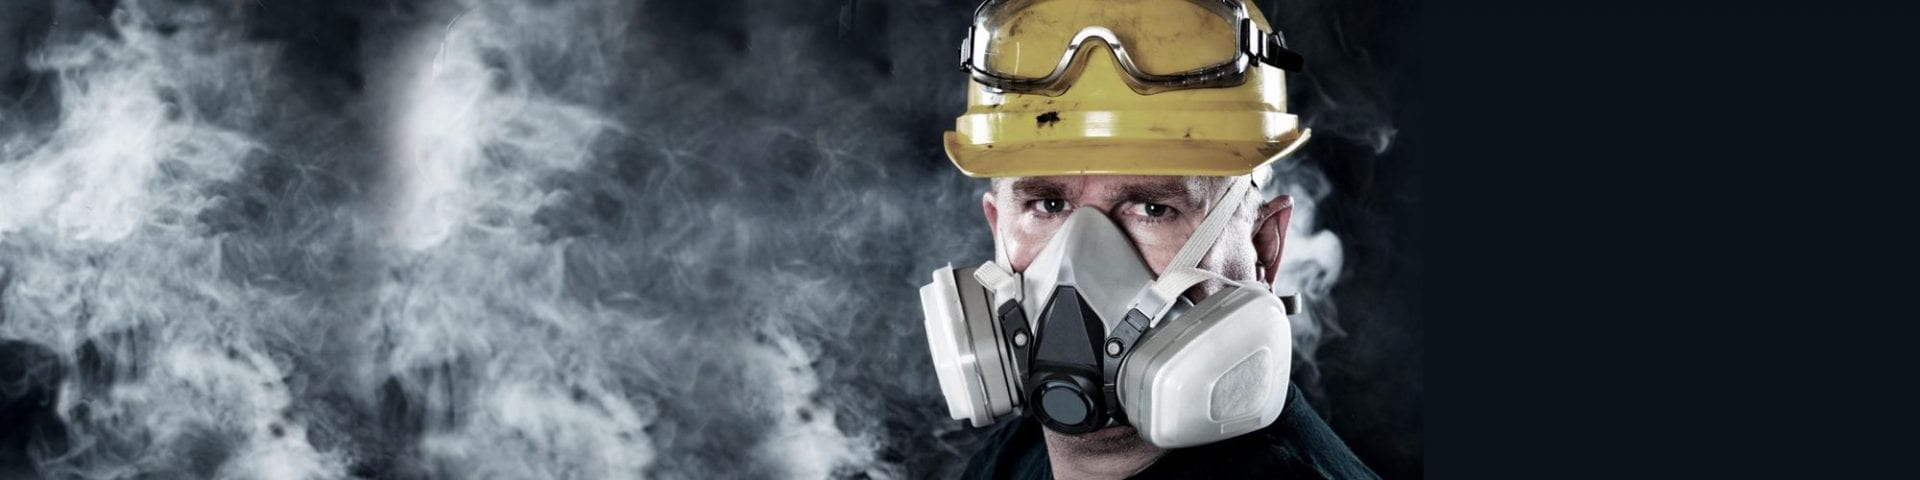 Common Mistakes in Compliance with OSHA Standard for Respiratory Protection